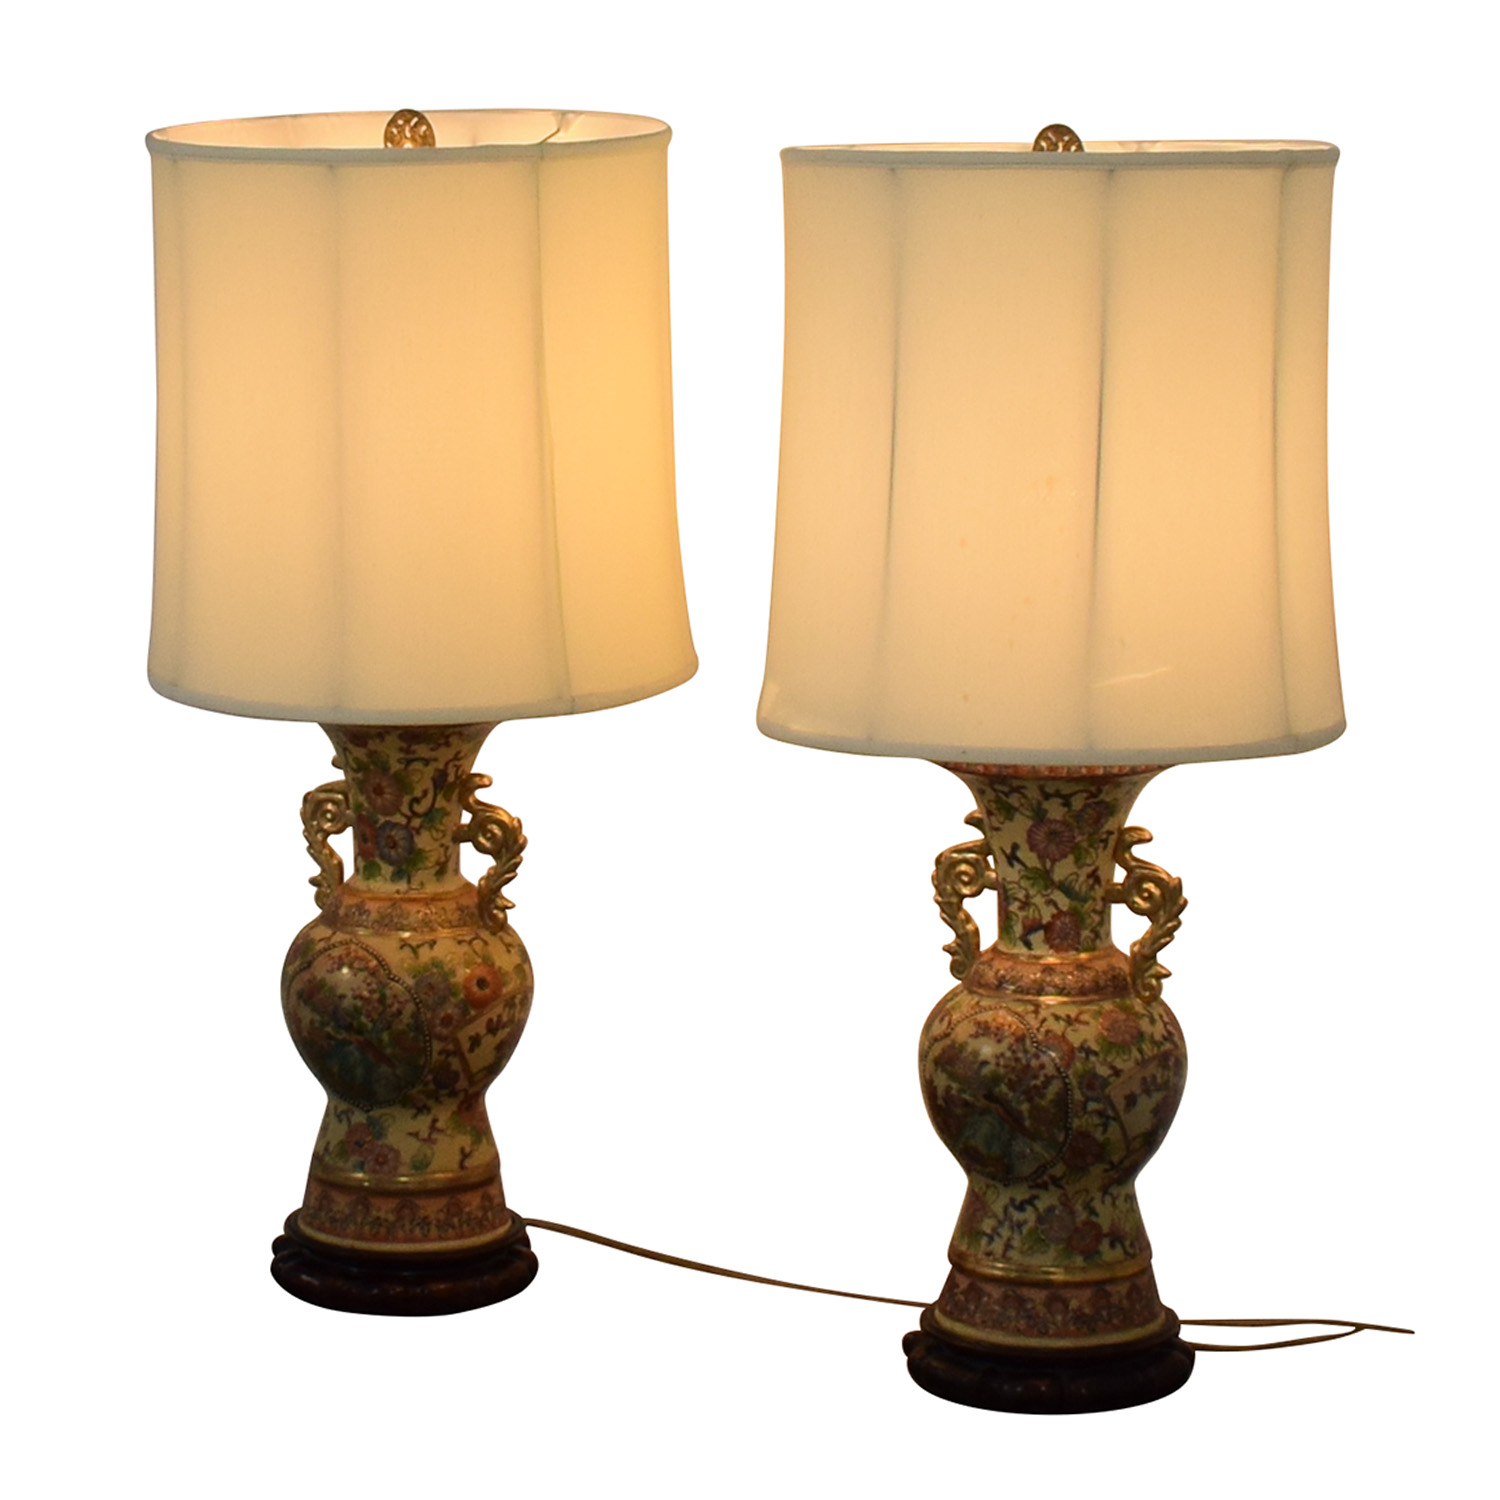 Vintage Celadon Oriental Table Lamps Decor